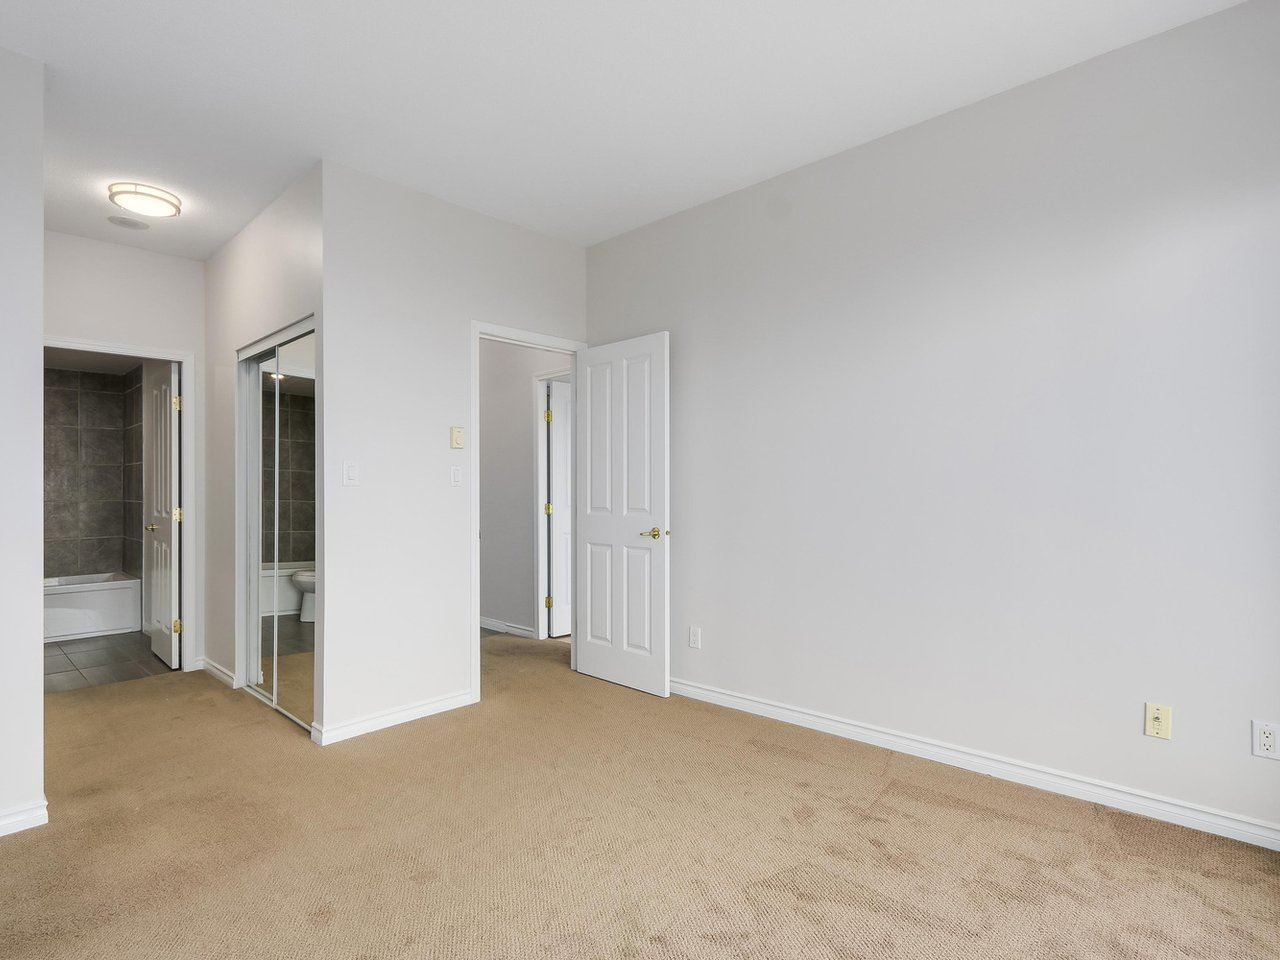 Condo Apartment at 1903 6837 STATION HILL DRIVE, Unit 1903, Burnaby South, British Columbia. Image 11